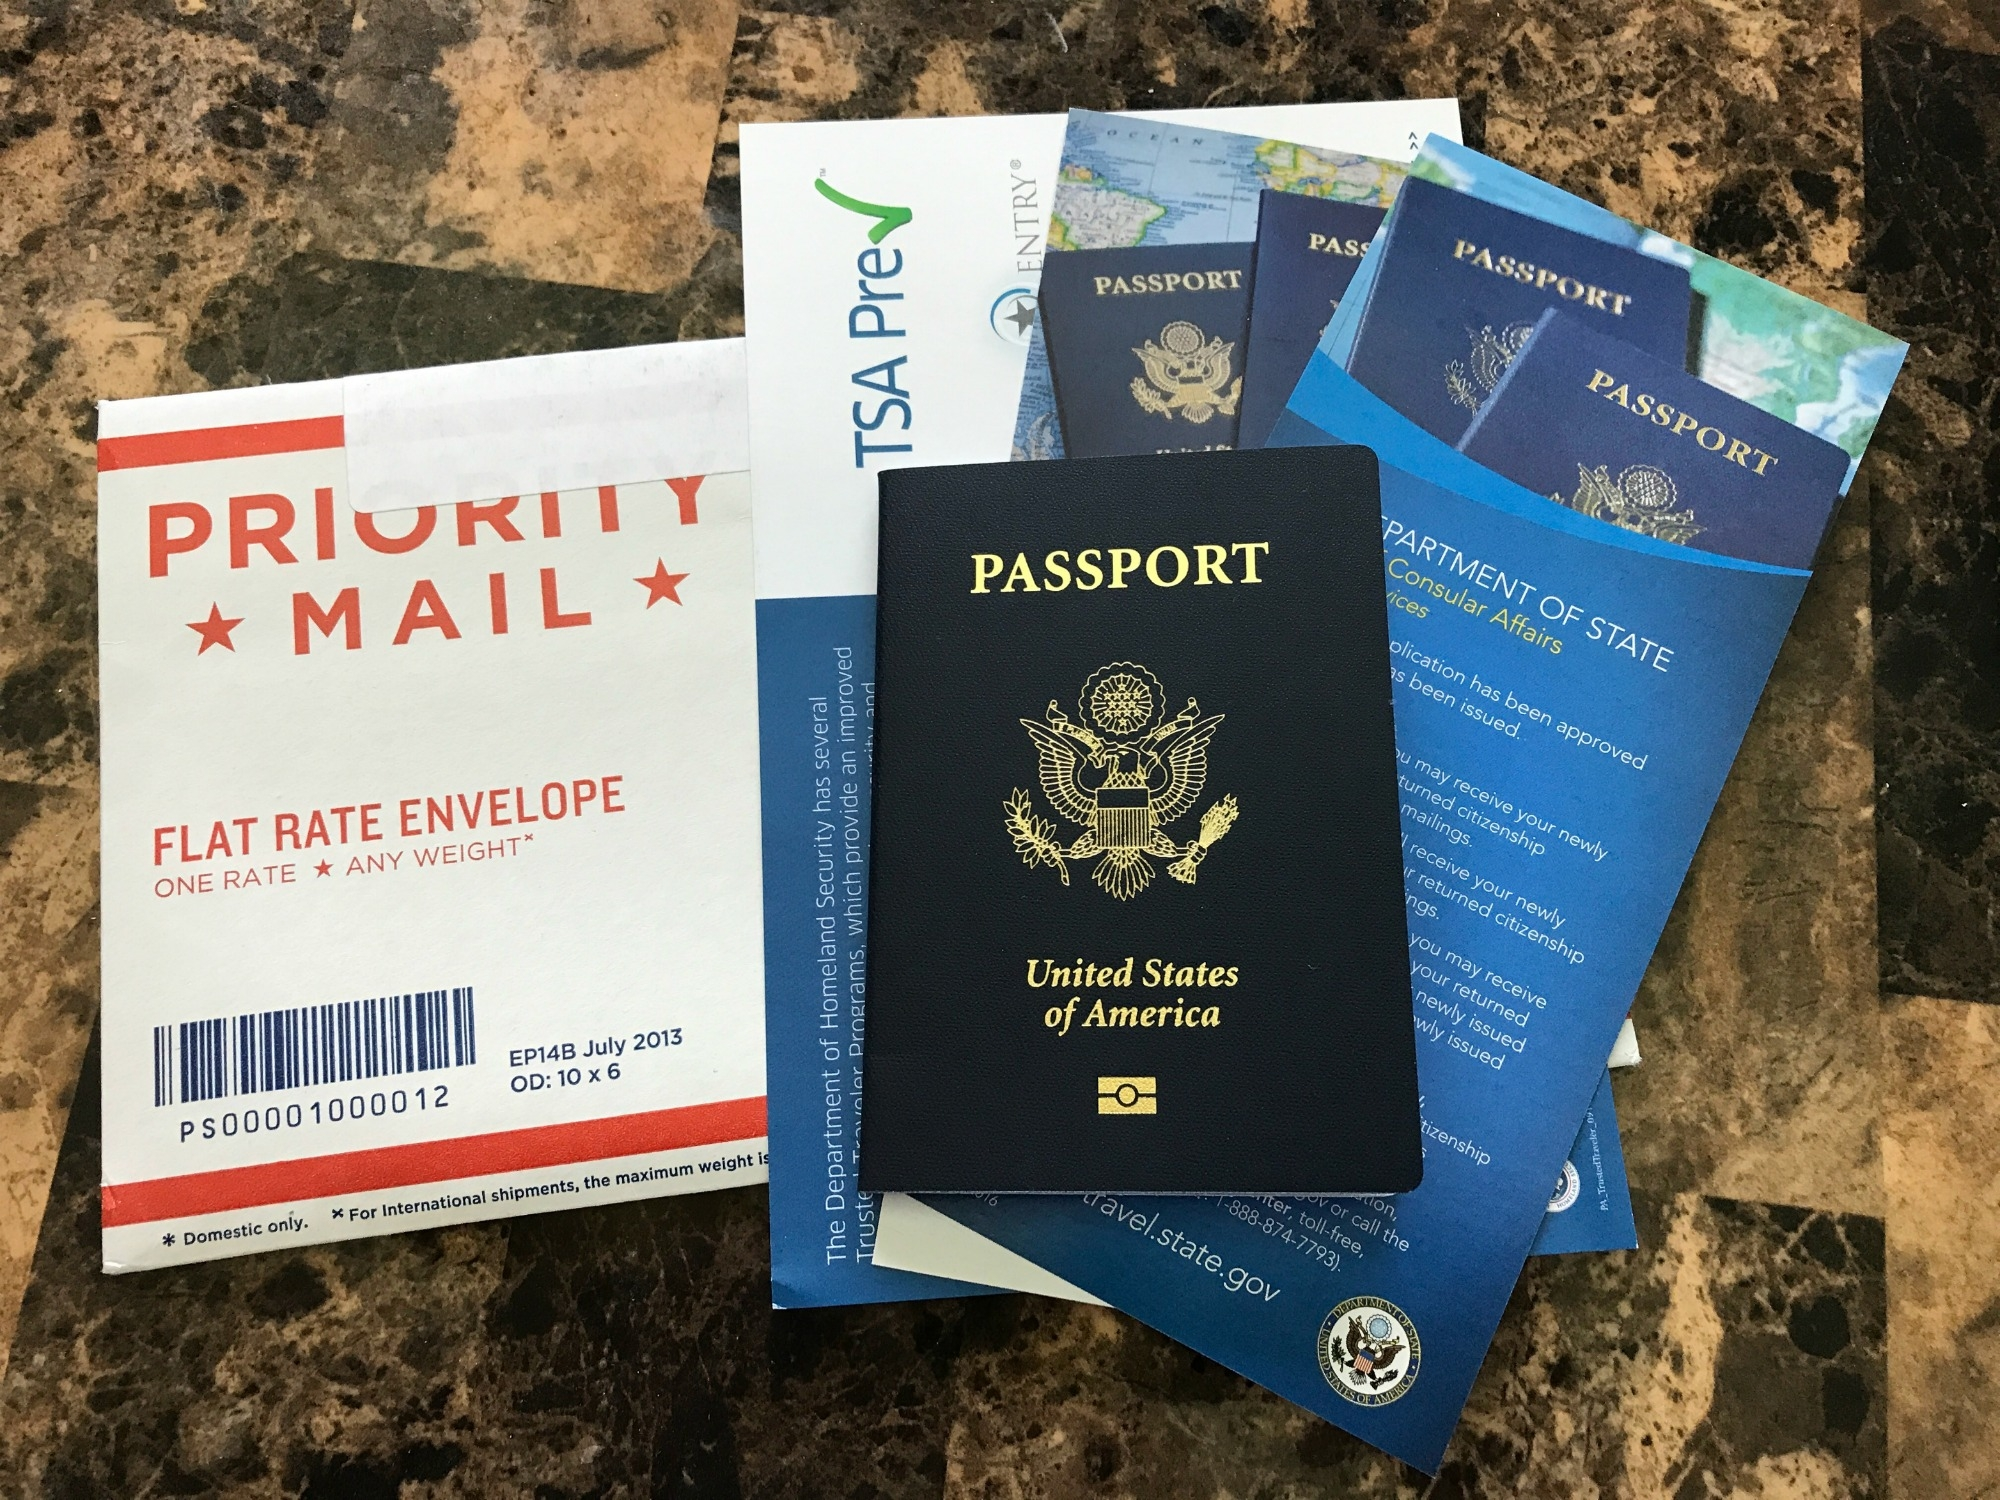 express entry passport renewal document